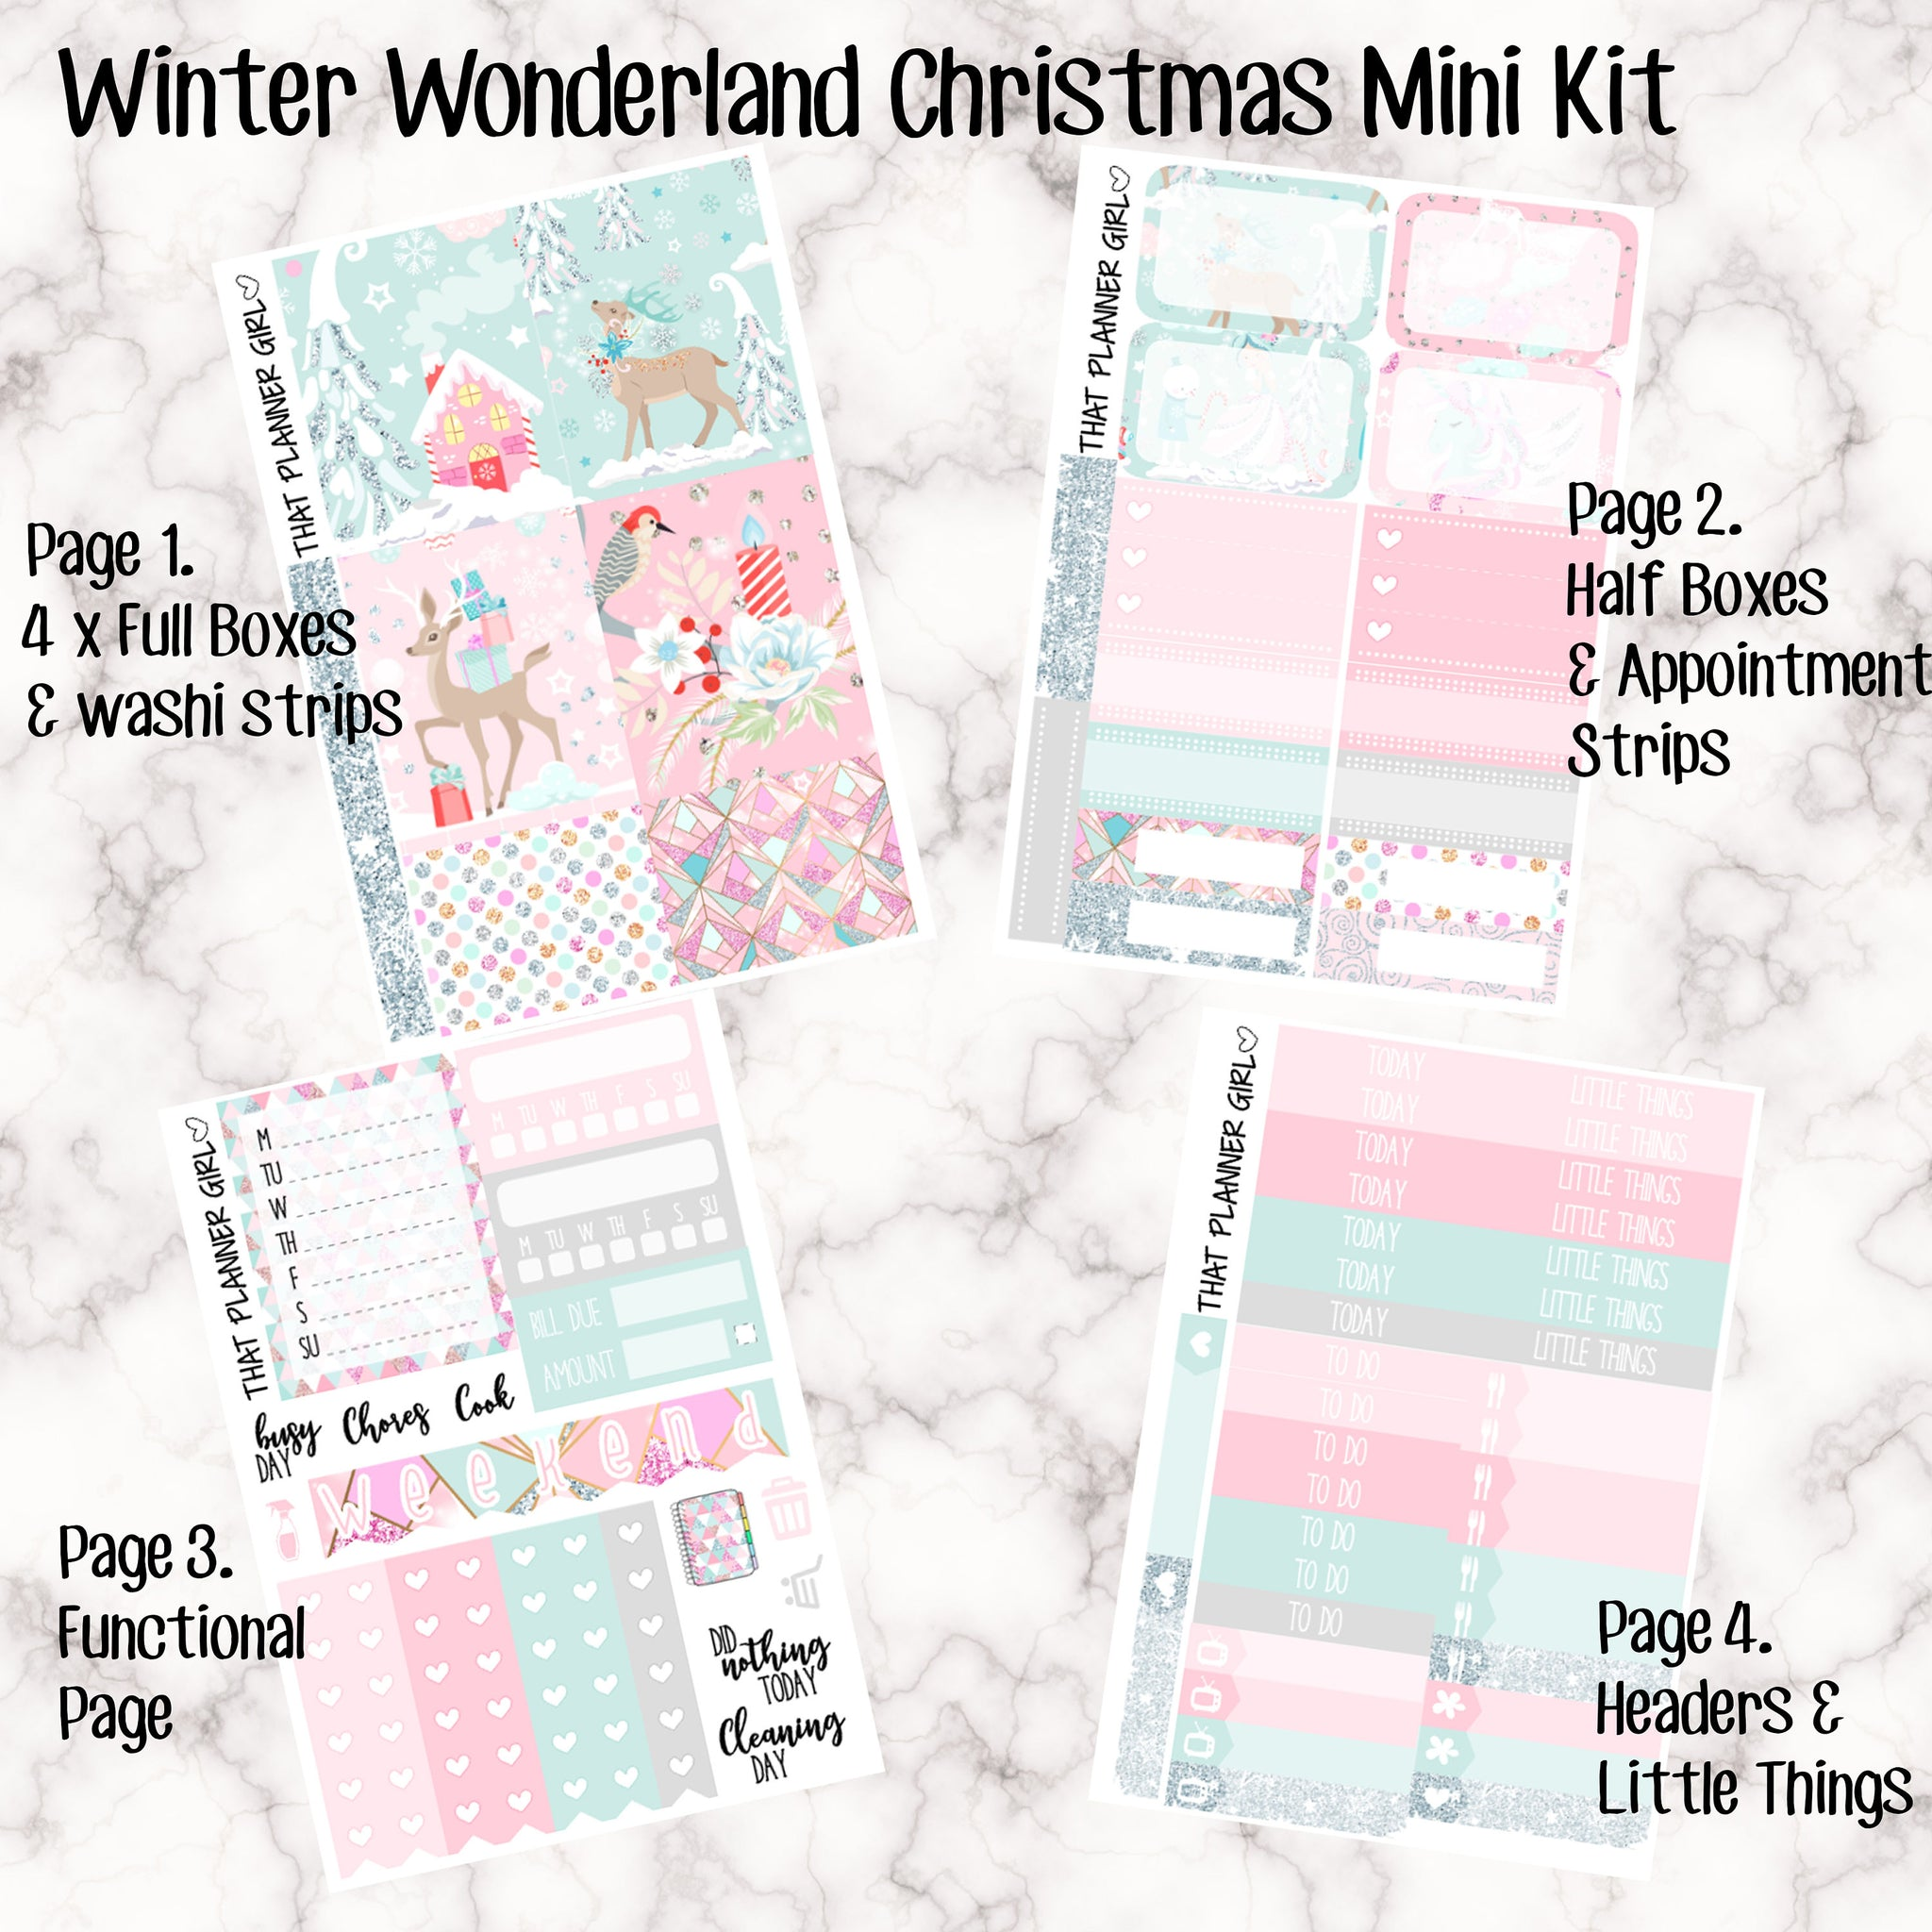 Winter Wonderland Christmas Mini Kit - Sheets available individually or as a full kit!!